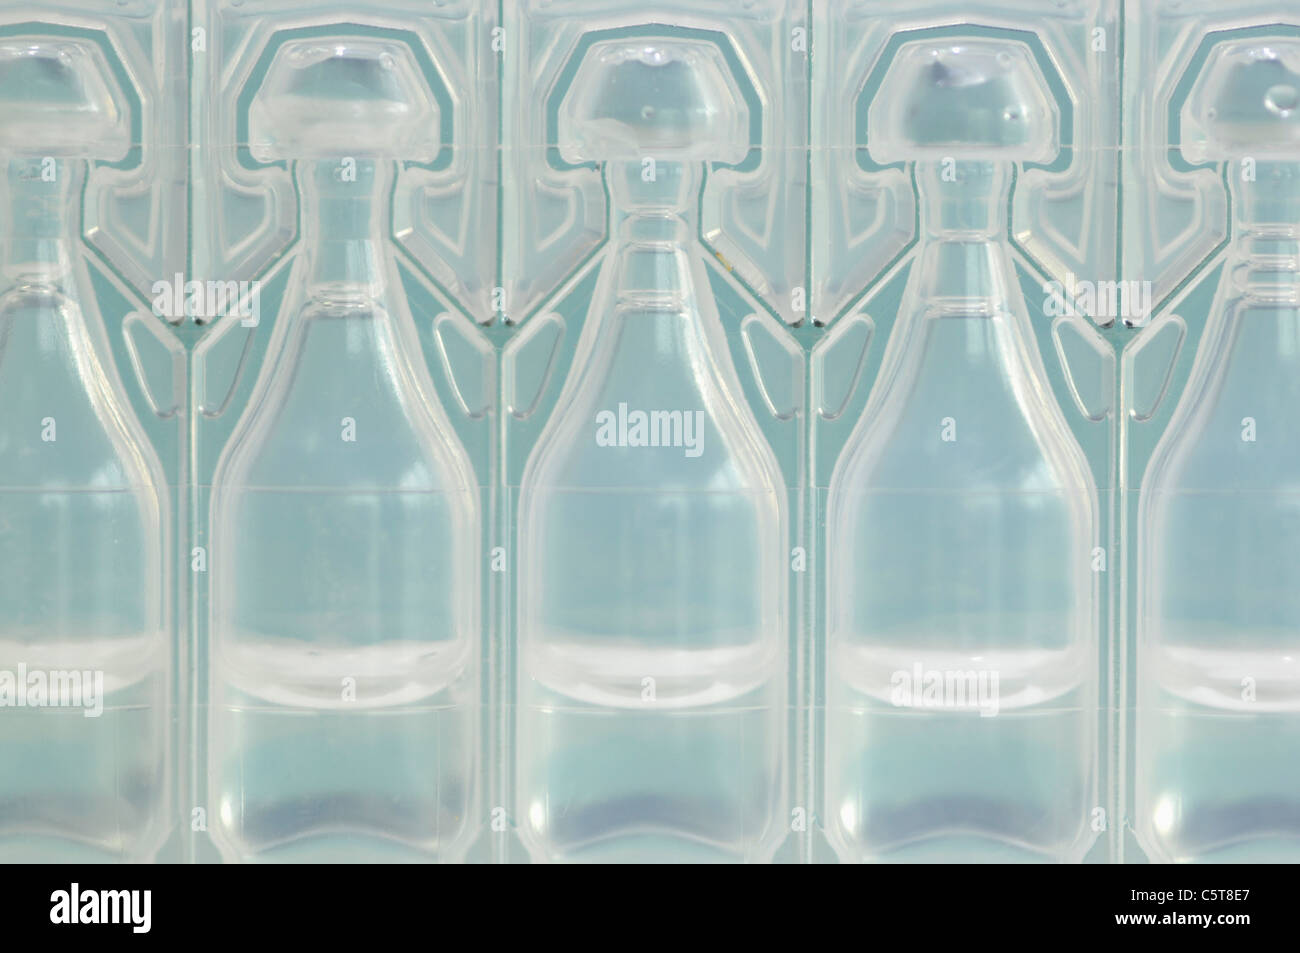 Plastic Vials in a row, full frame, close-up - Stock Image